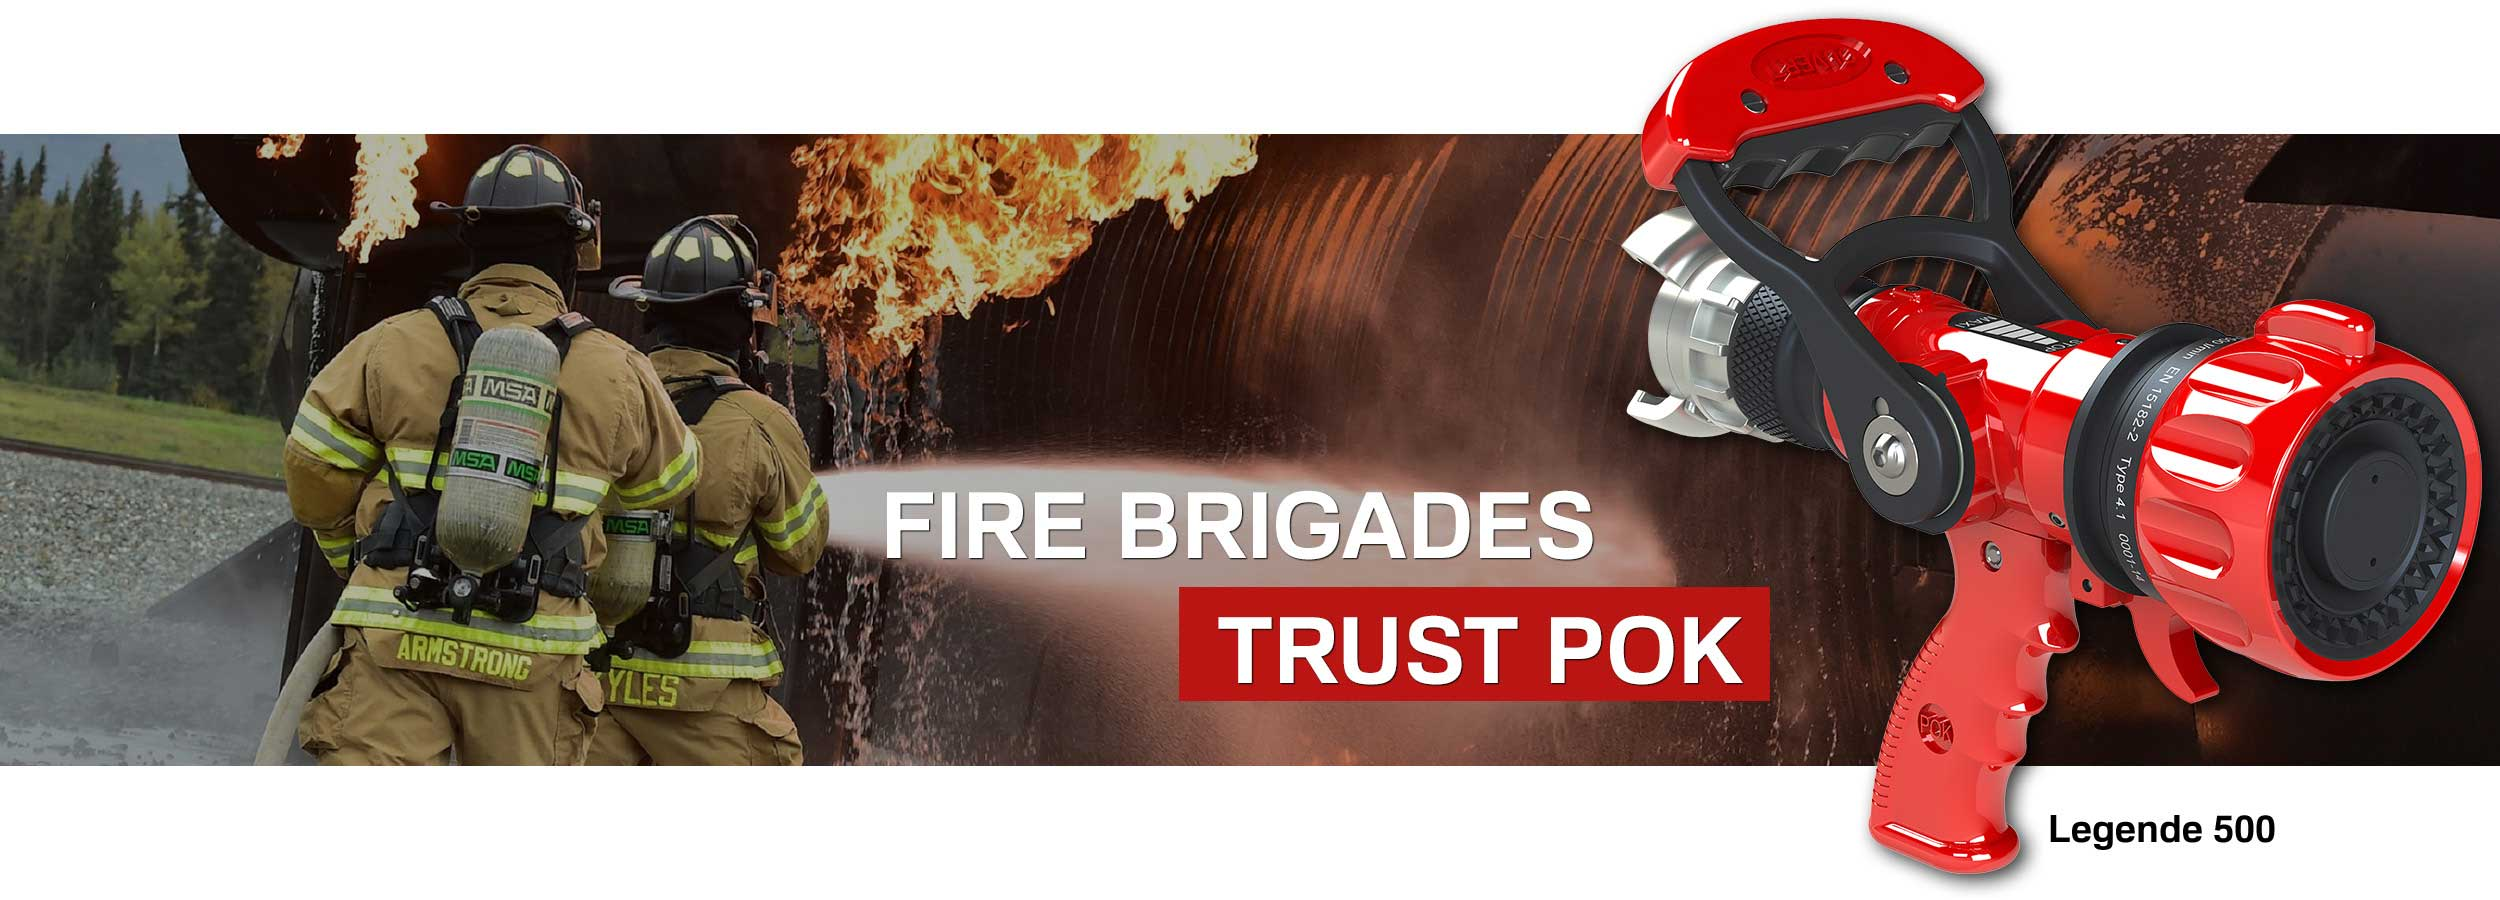 POK - Manufacturer of firefighting equipment - Home